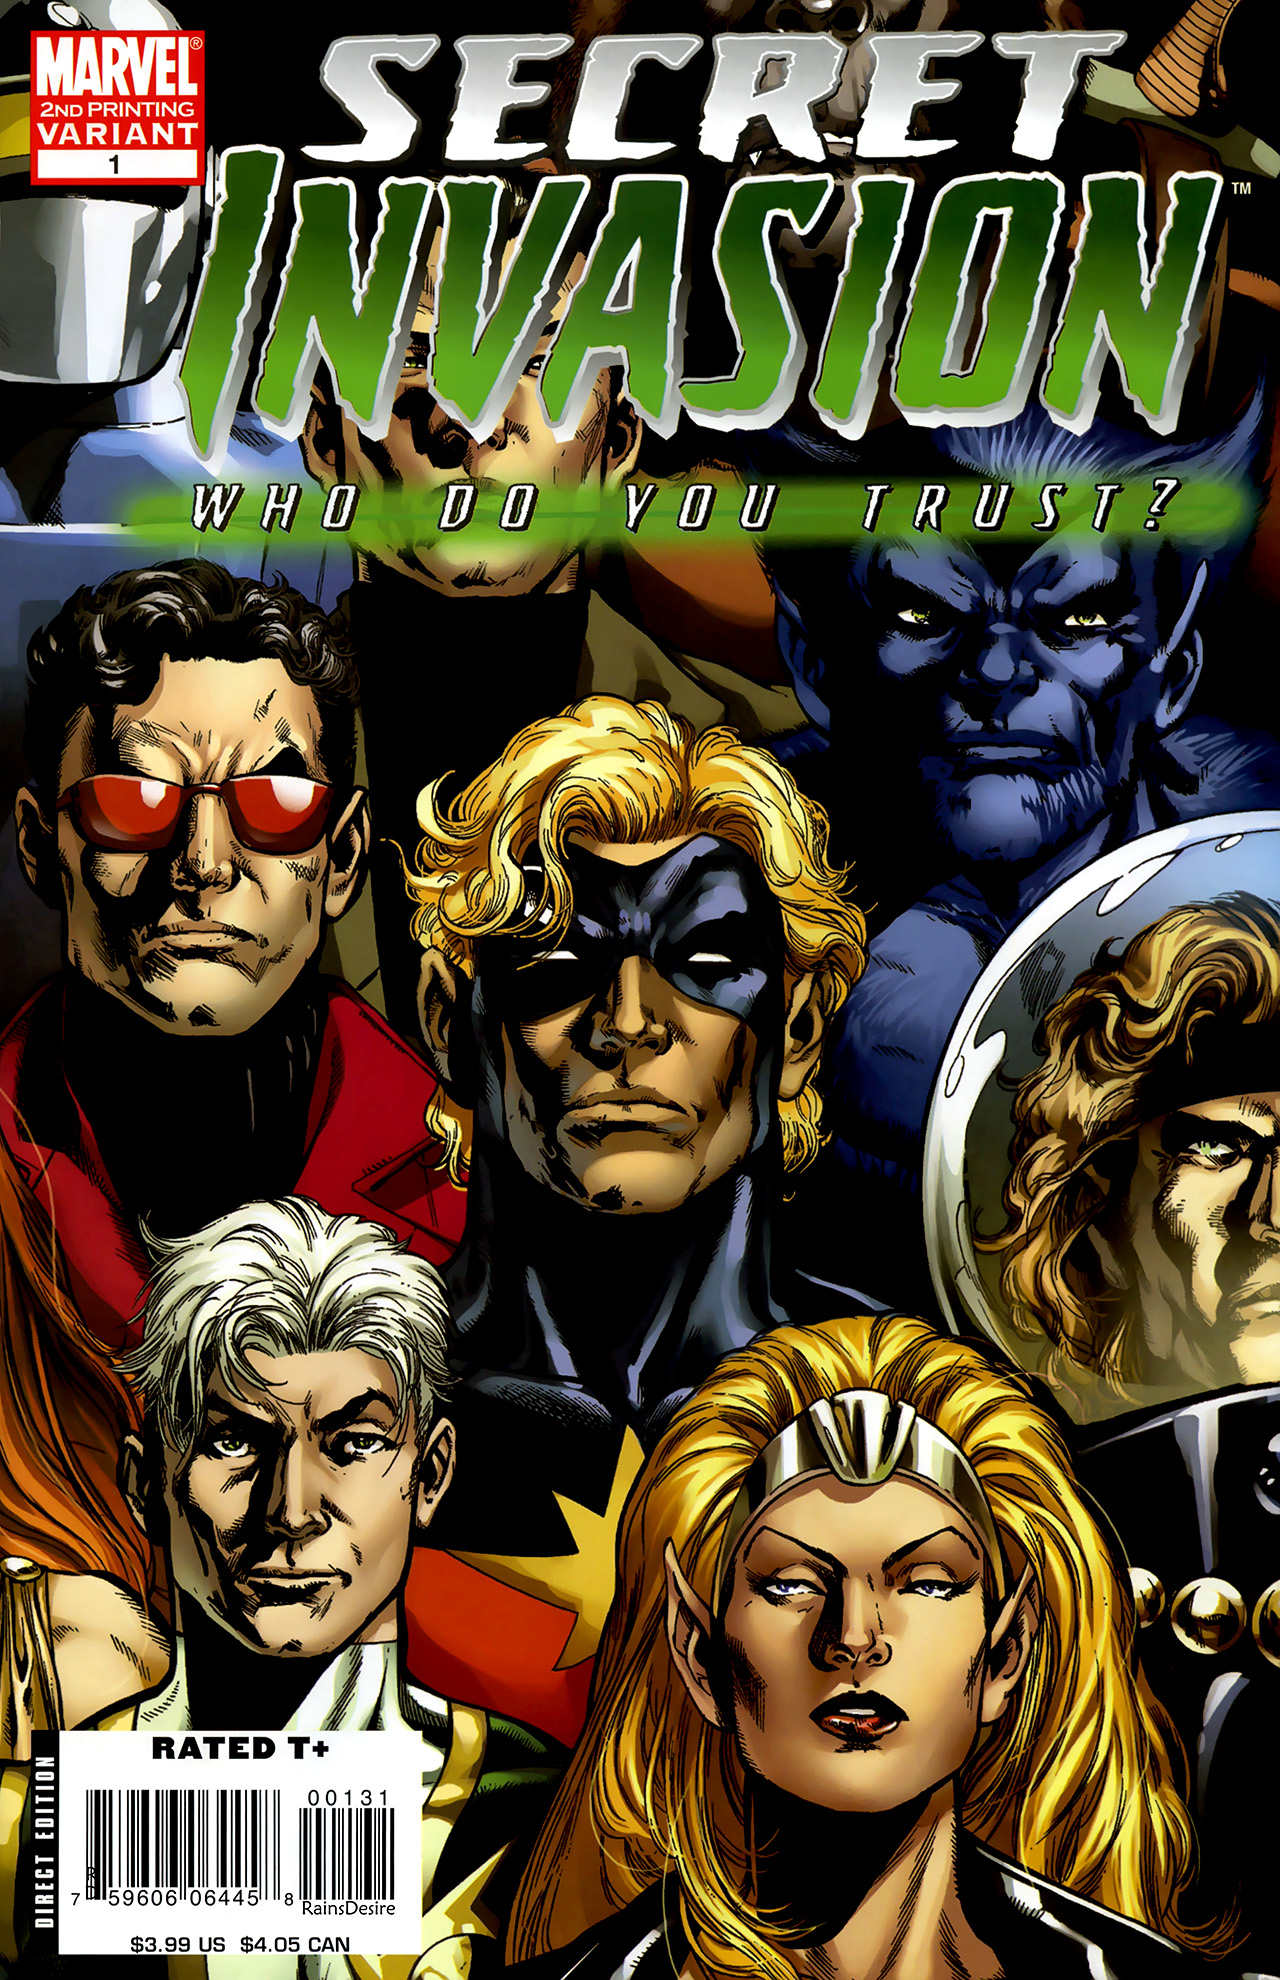 Read online Secret Invasion: Who Do You Trust? comic -  Issue # Full - 3